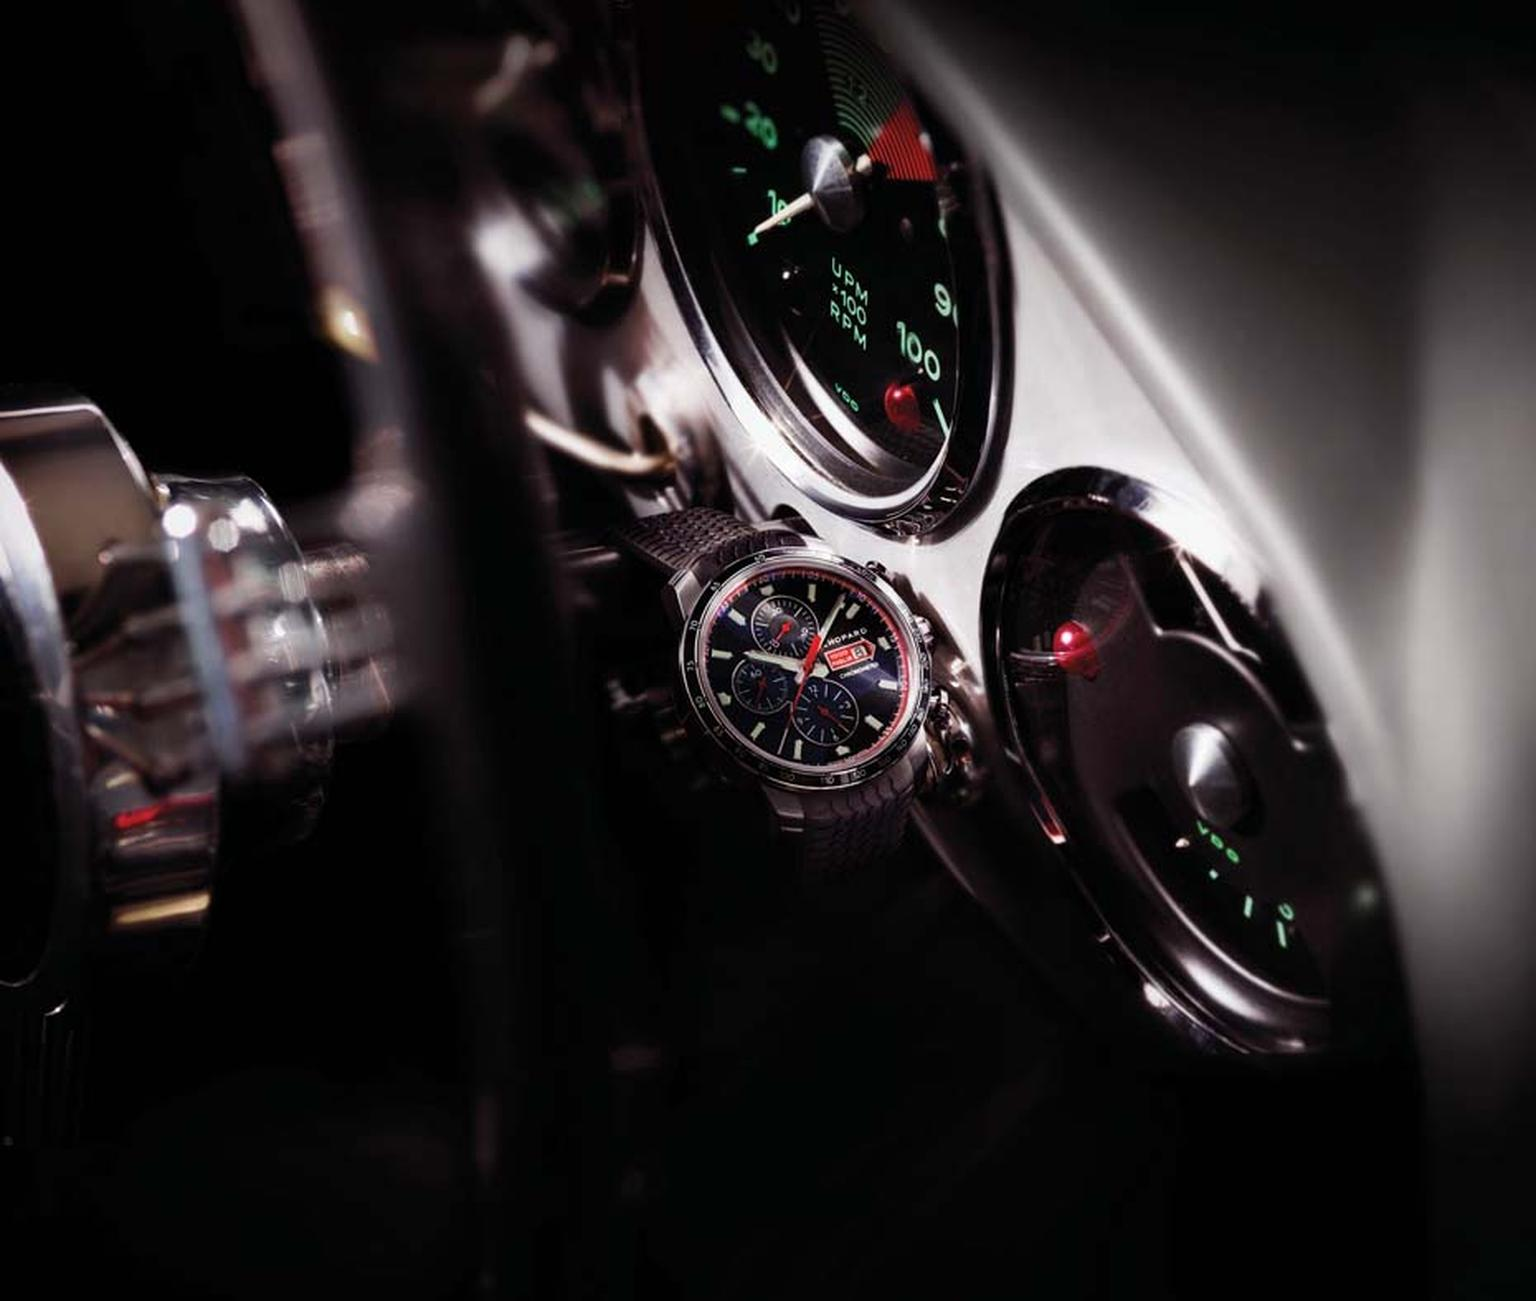 Chopard_Mille Miglia watches_003.jpg